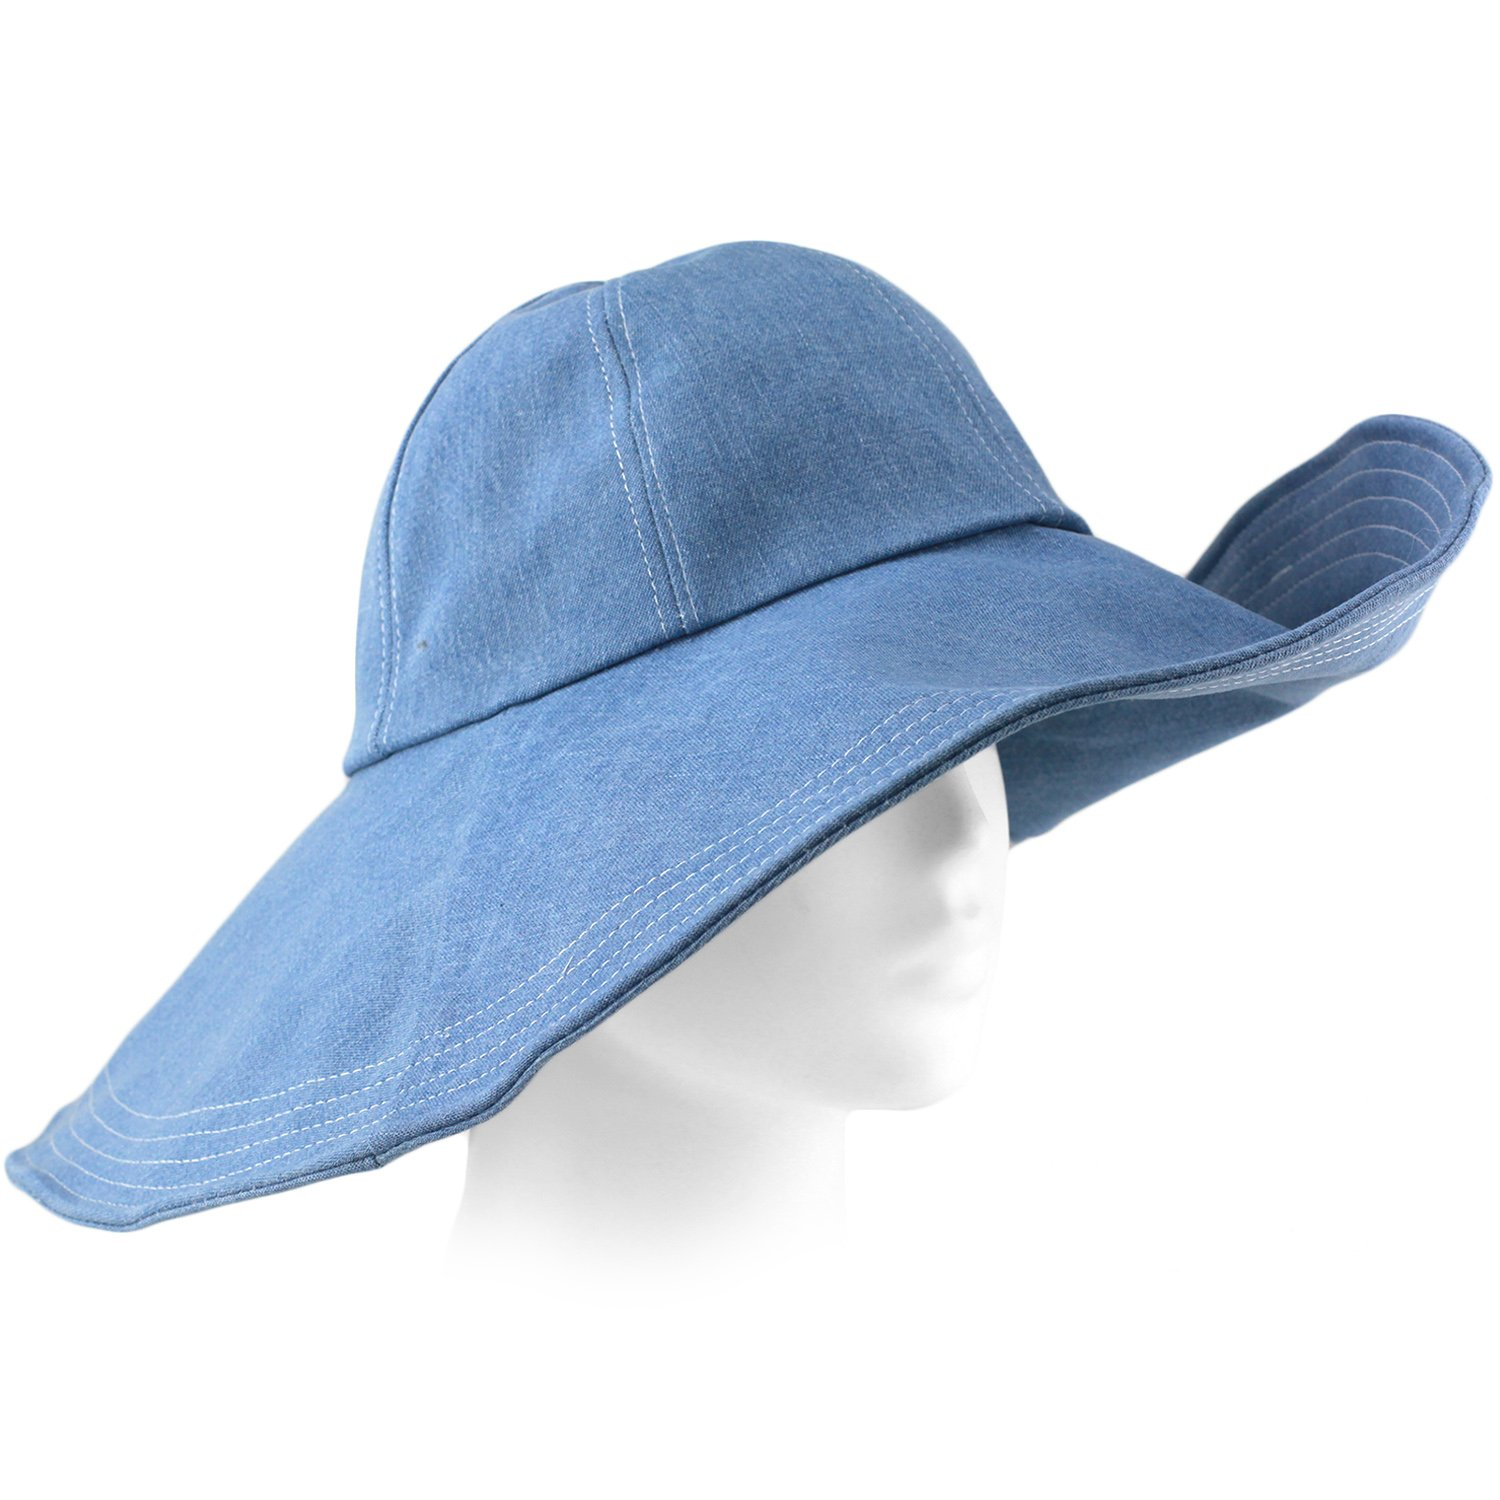 d2fb3143618bd Packable Summer Beach Sun Hat - Flexible Wide Wire Brim - Strap Included -  Washed Blue at Amazon Women s Clothing store